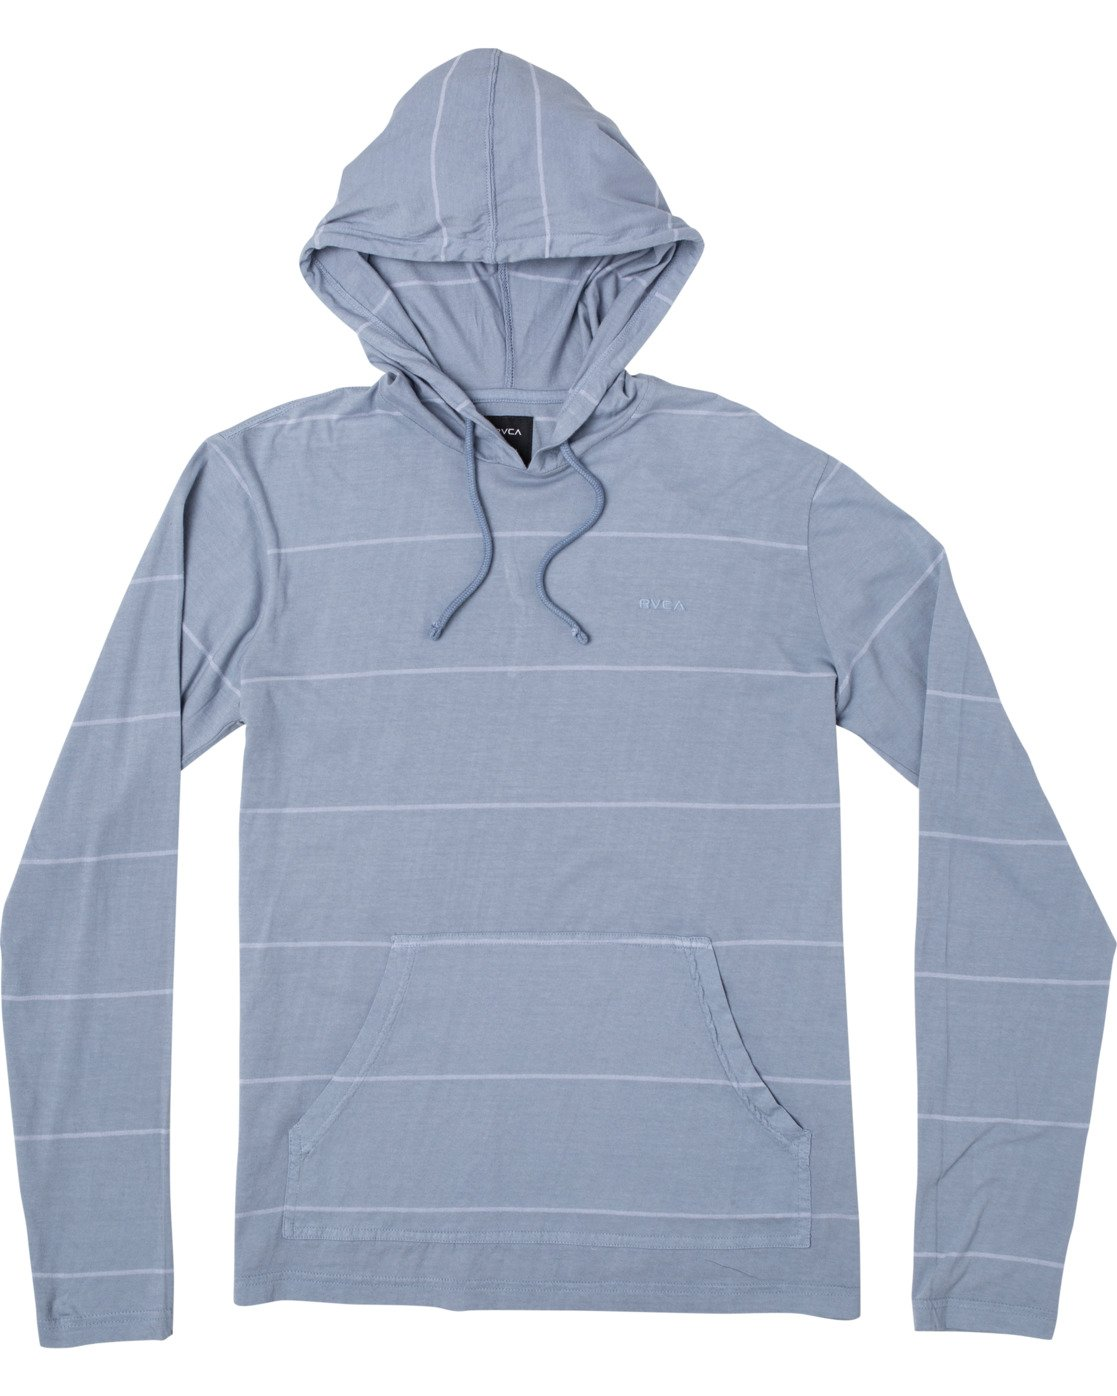 0 PTC STRIPE HOODED LONG SLEEVE TEE Blue M9553RPS RVCA